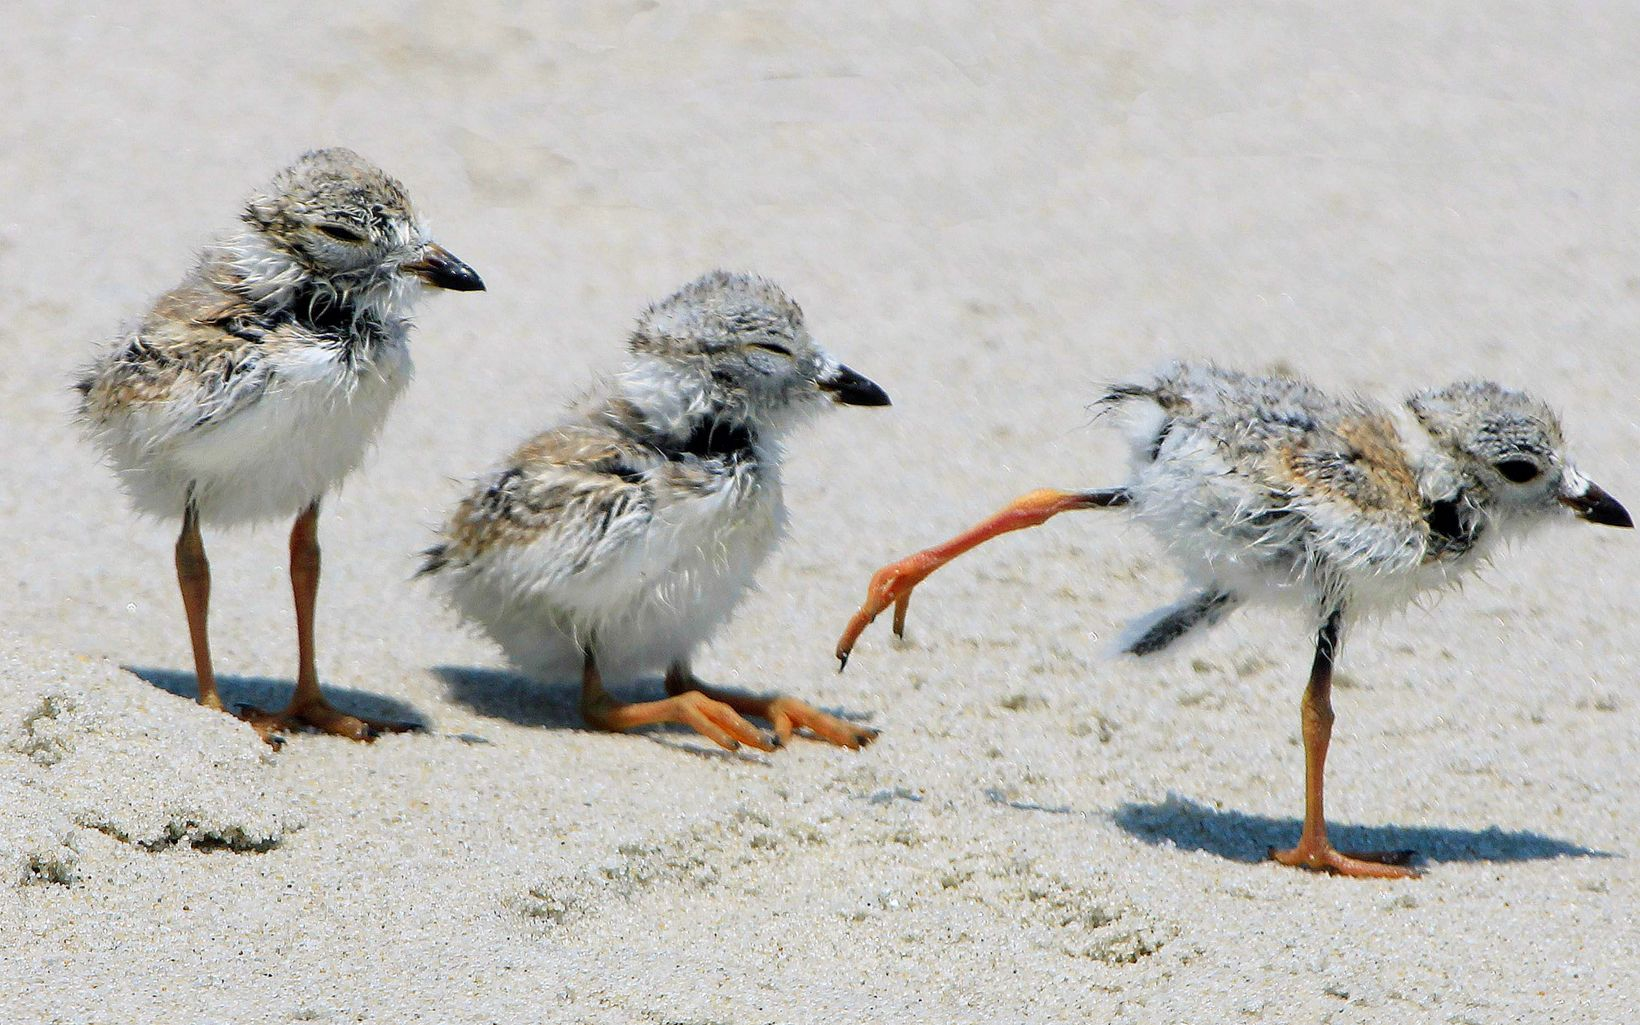 Three piping plover chicks on the beach at the South Cape May Meadows